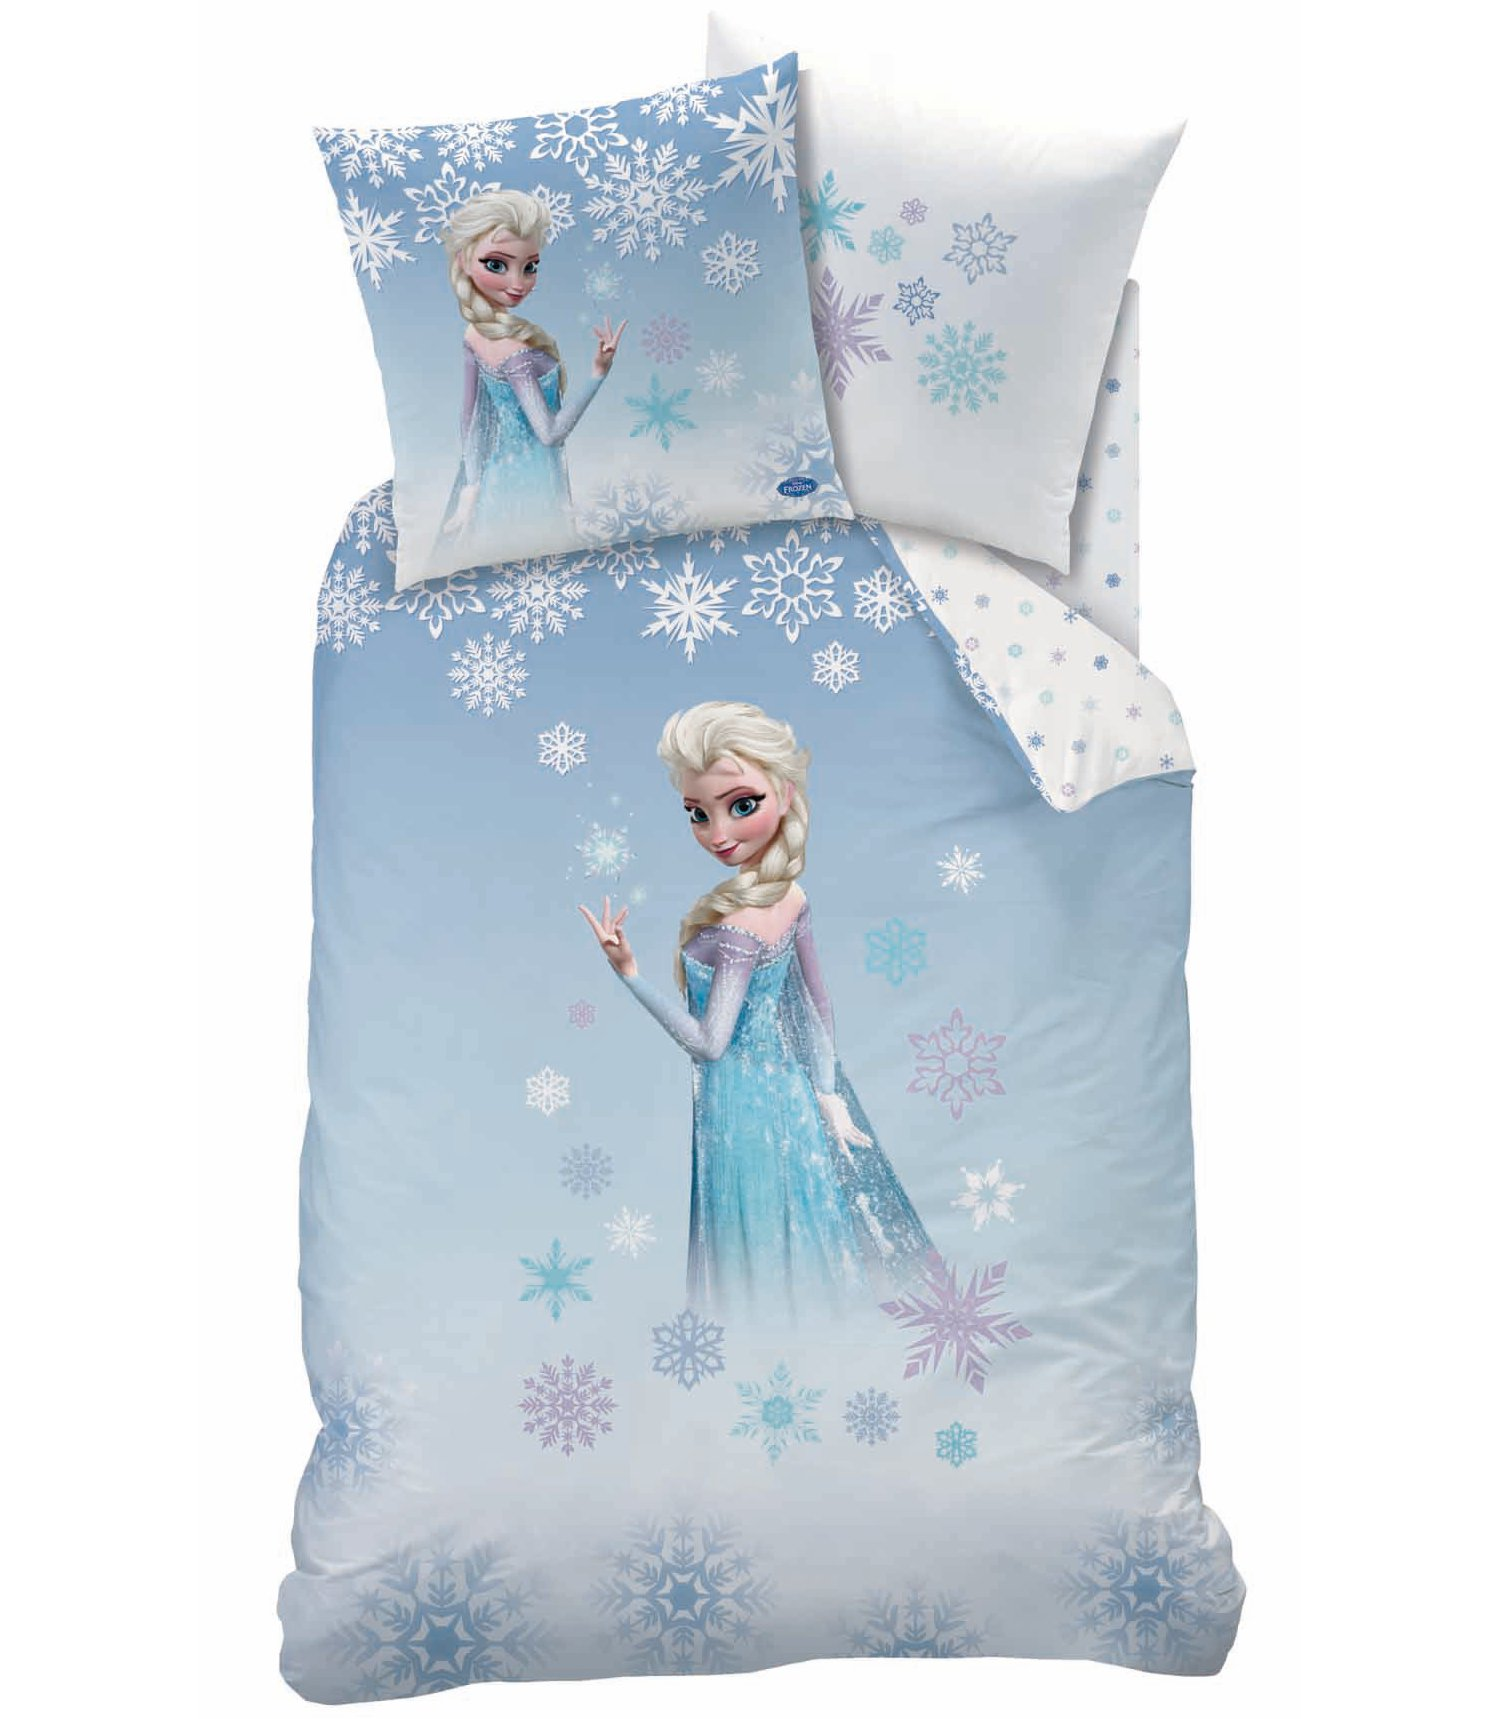 housse de couette disney princesse frozen parure de lit. Black Bedroom Furniture Sets. Home Design Ideas